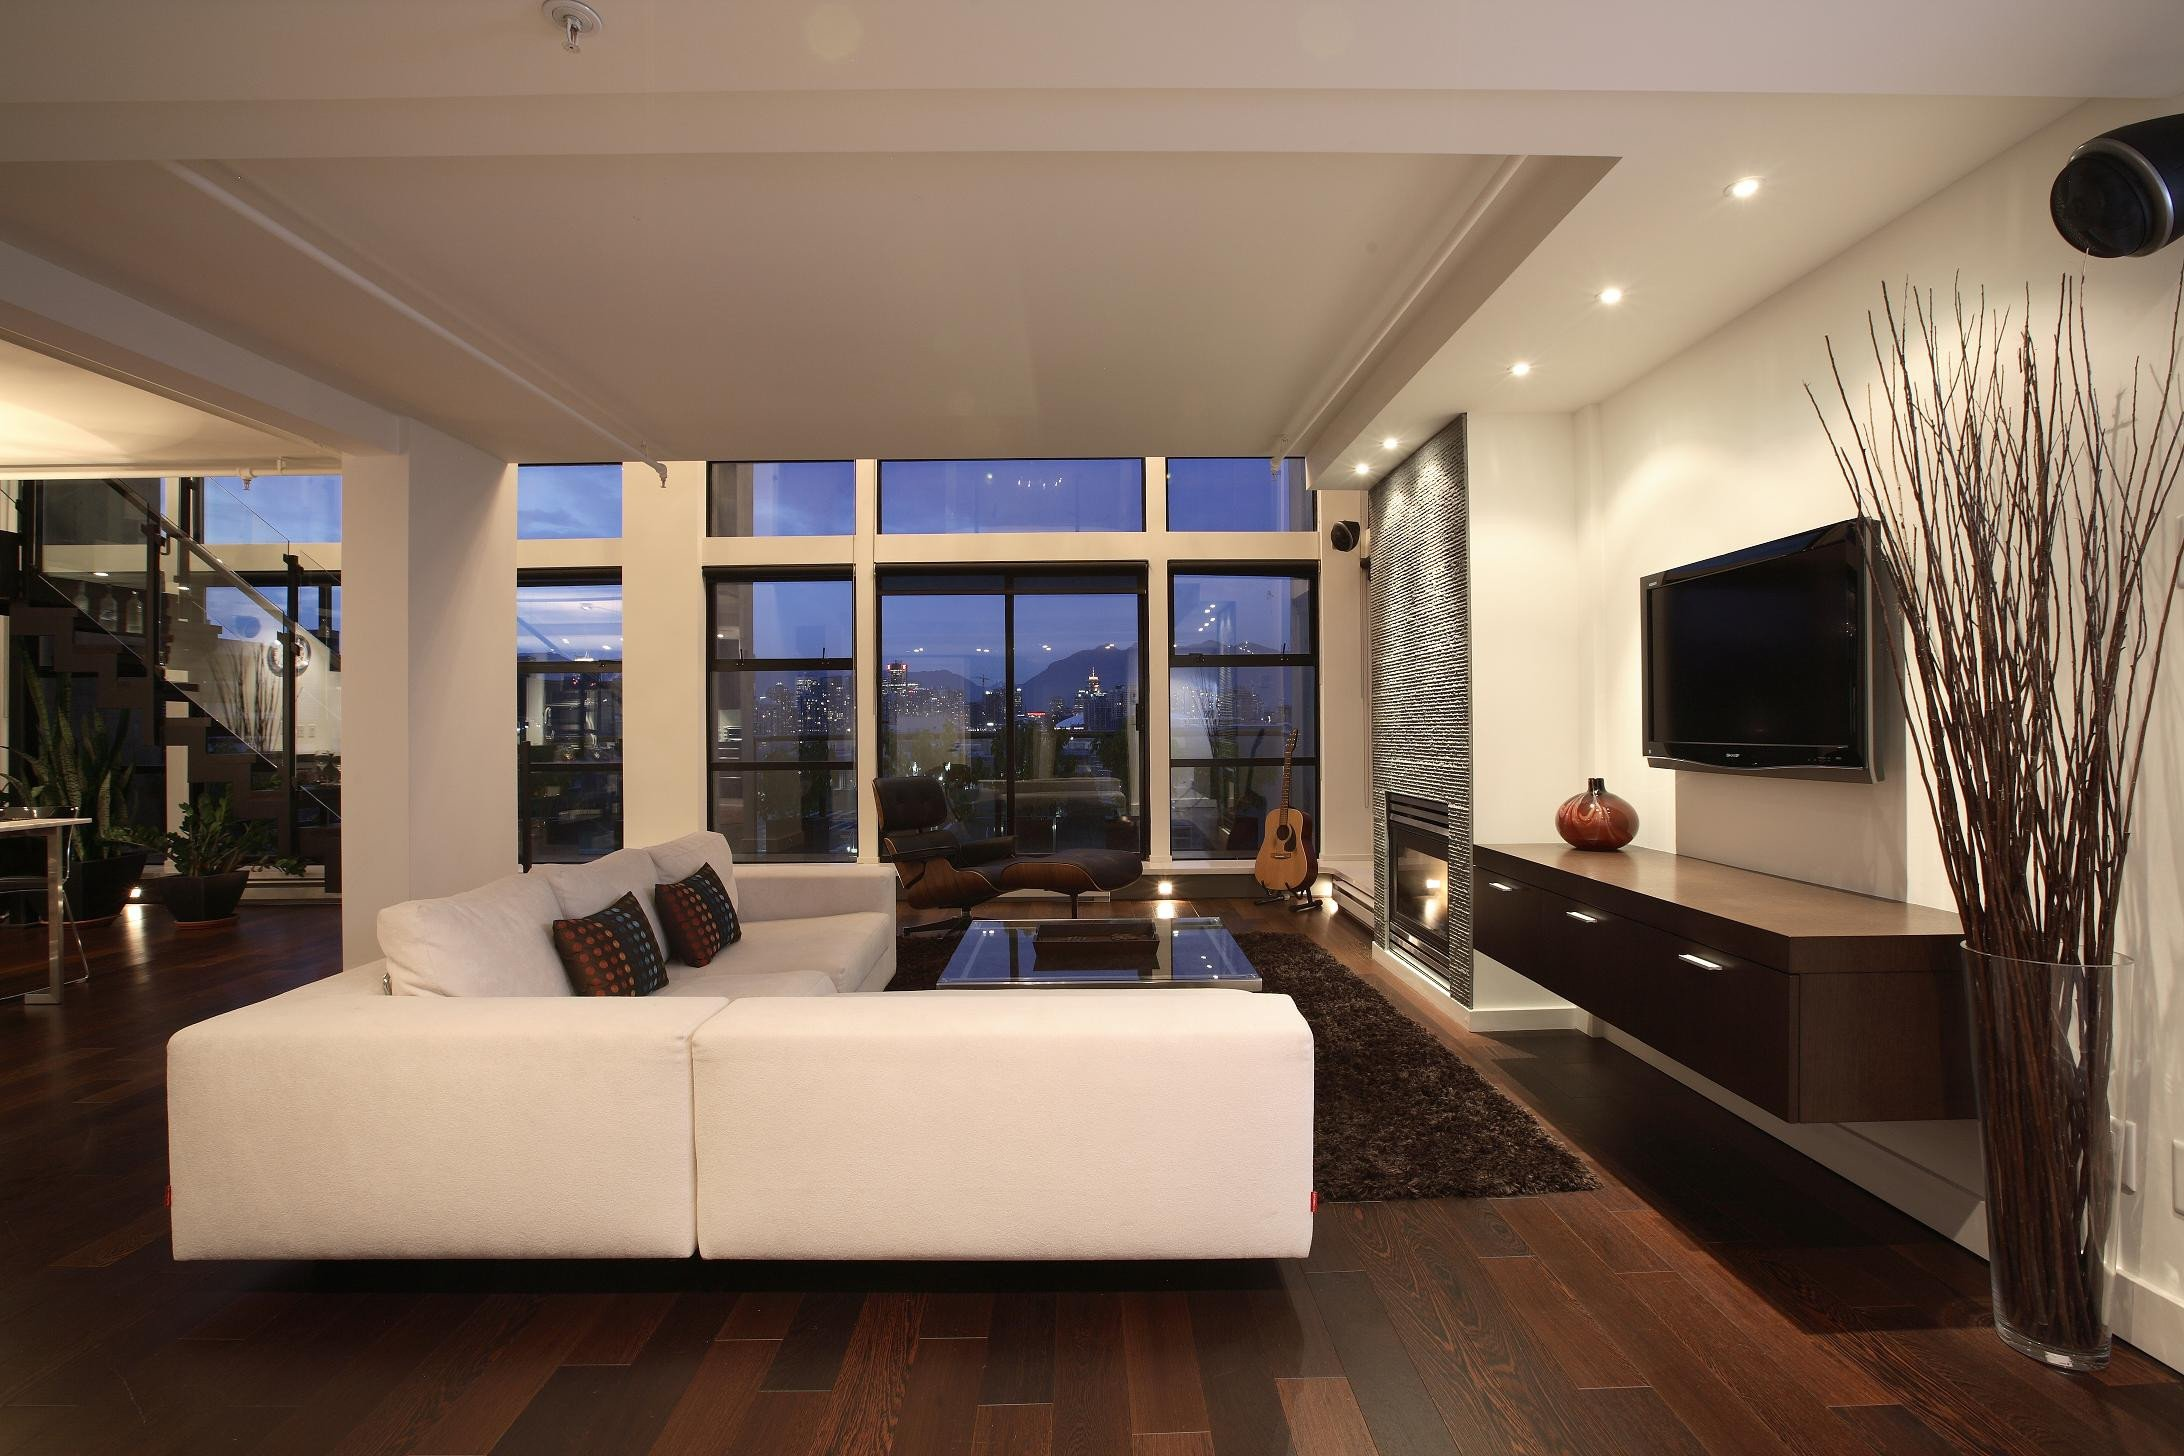 Extra Modern Living Room Decorating Ideas How to Arrange Your Living Room Furniture